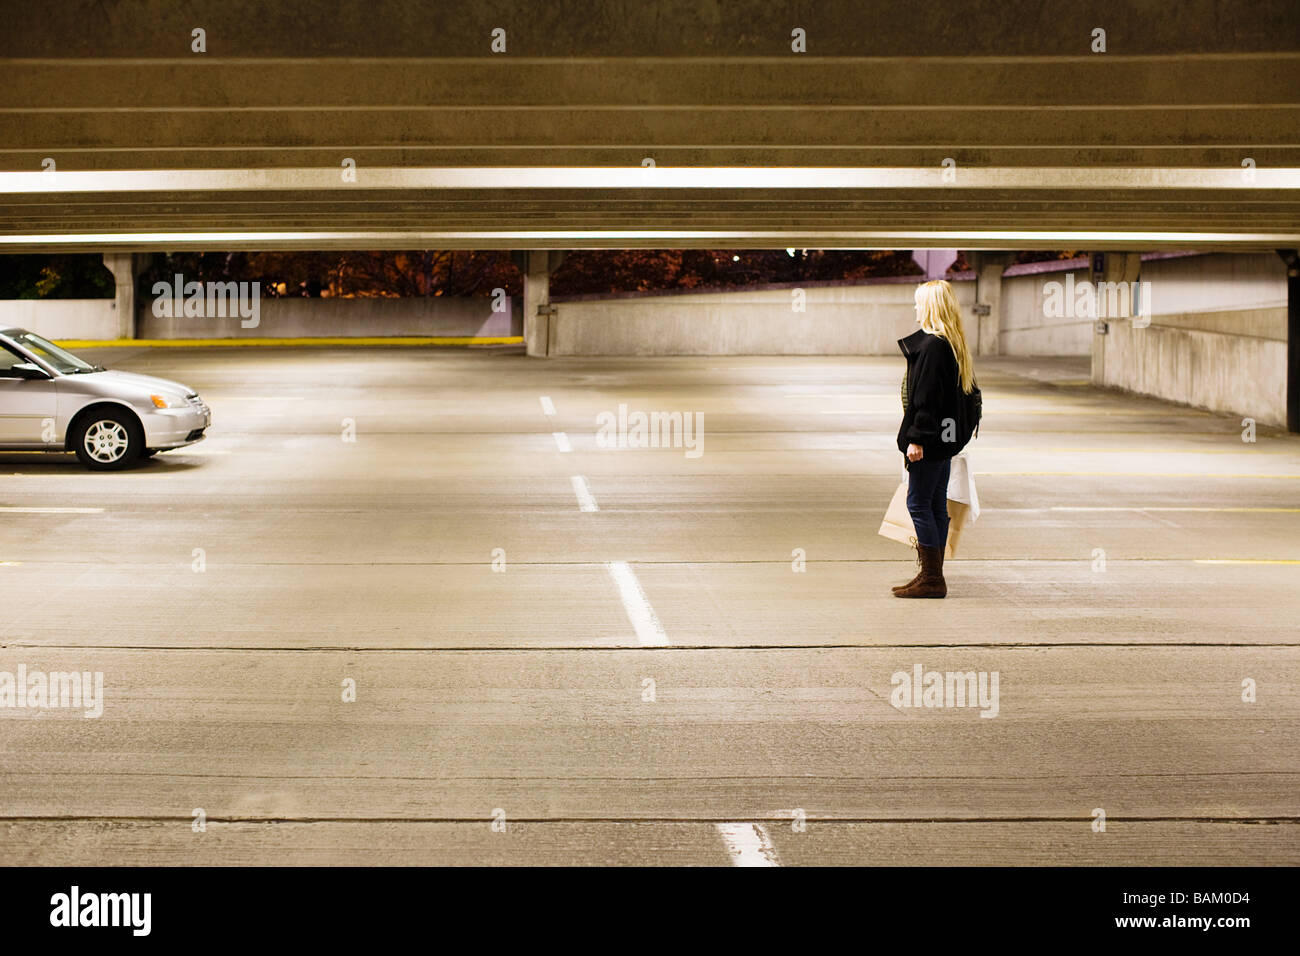 Woman in alone in parking lot - Stock Image